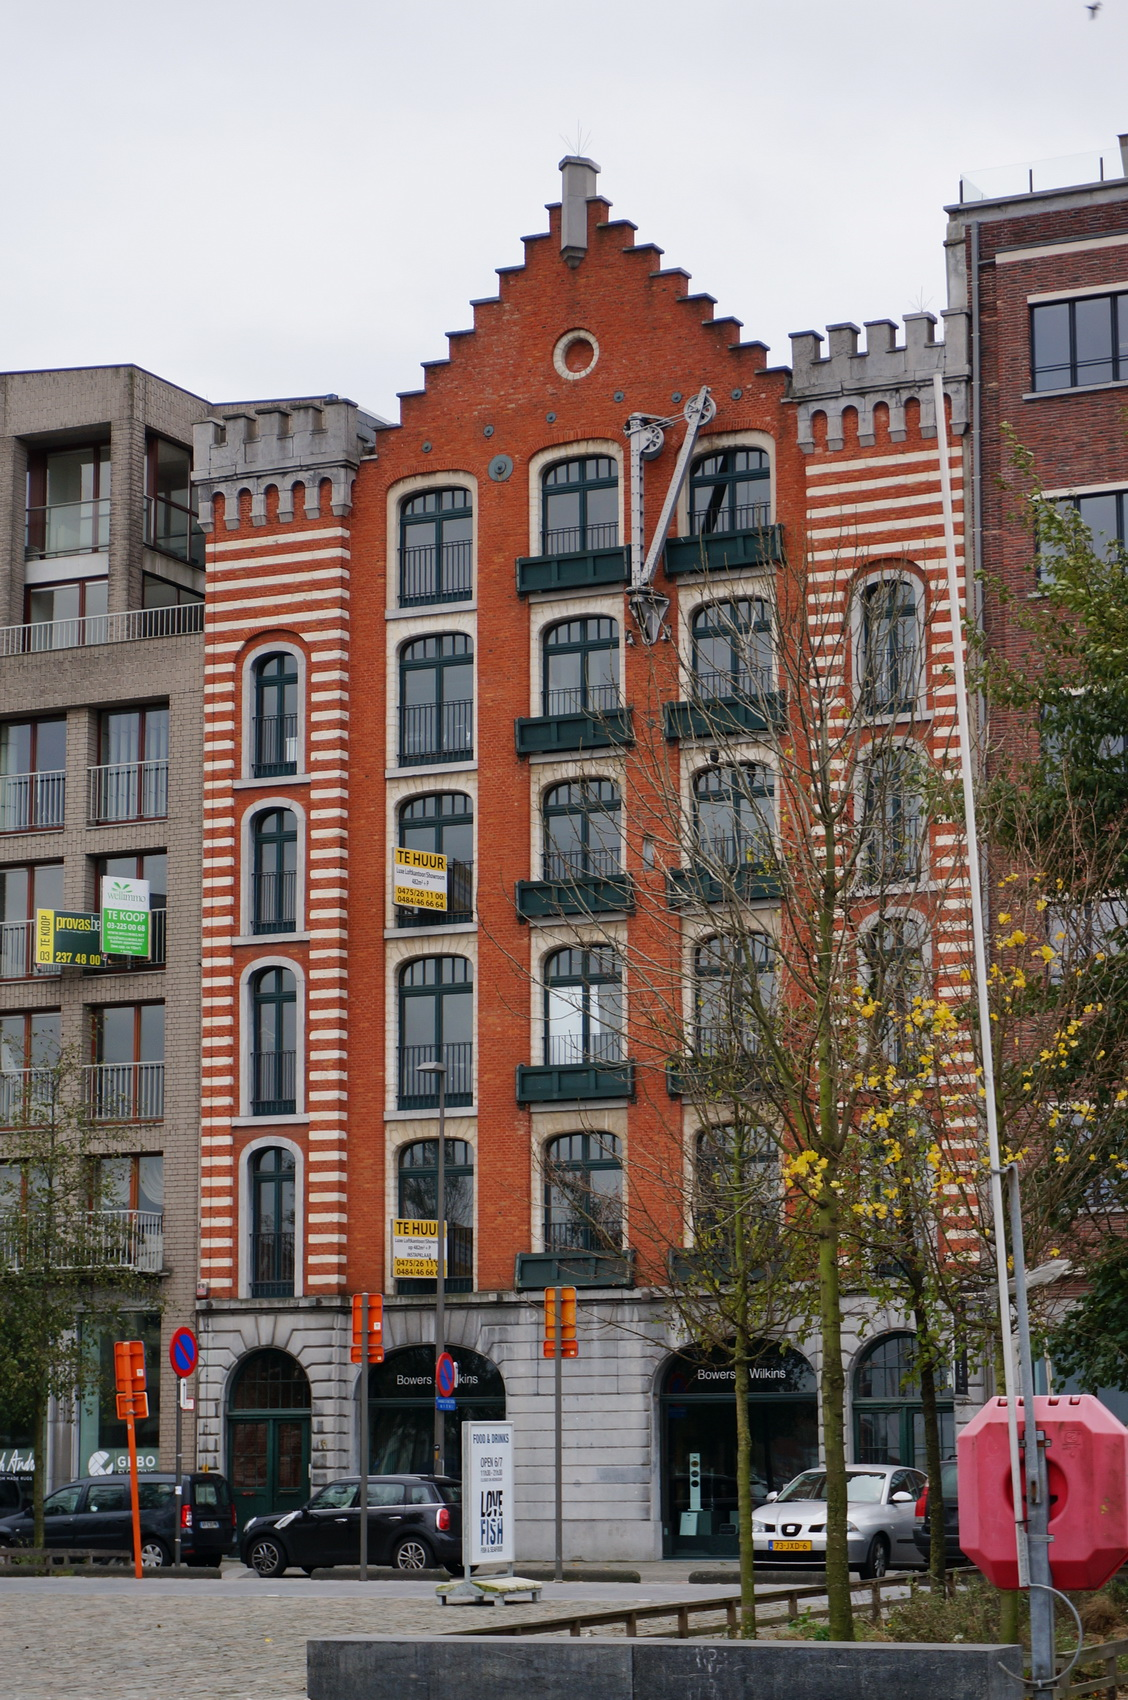 anvers, antwerp, antwerpen, quartier du mas, port, anvers industriel, architecture flamande